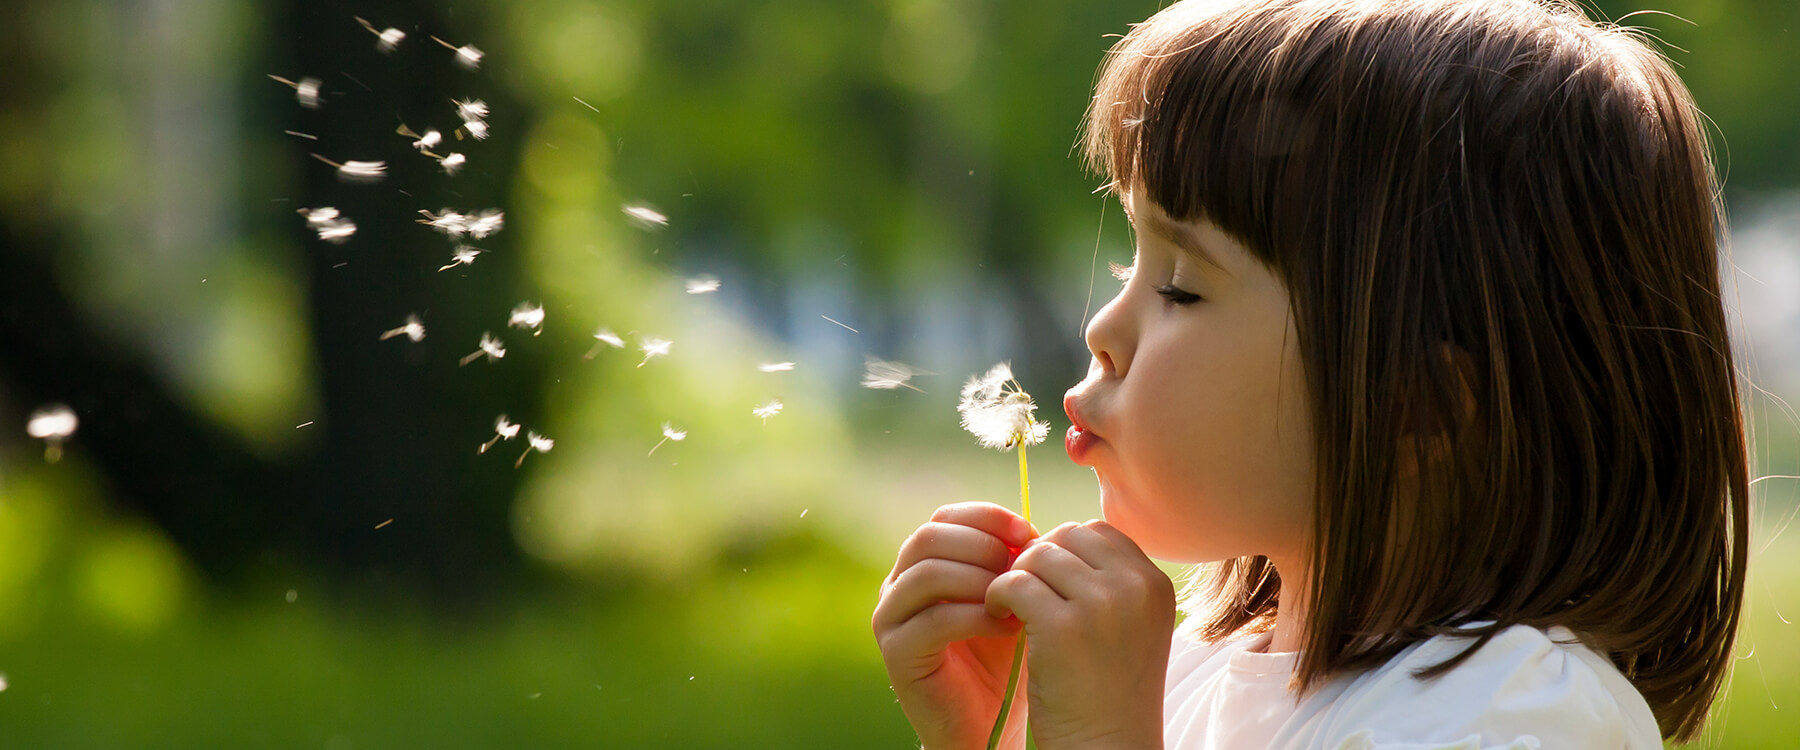 Young Girl Blowing a Dandelion - Pediatric Dentistry in Gallatin, TN